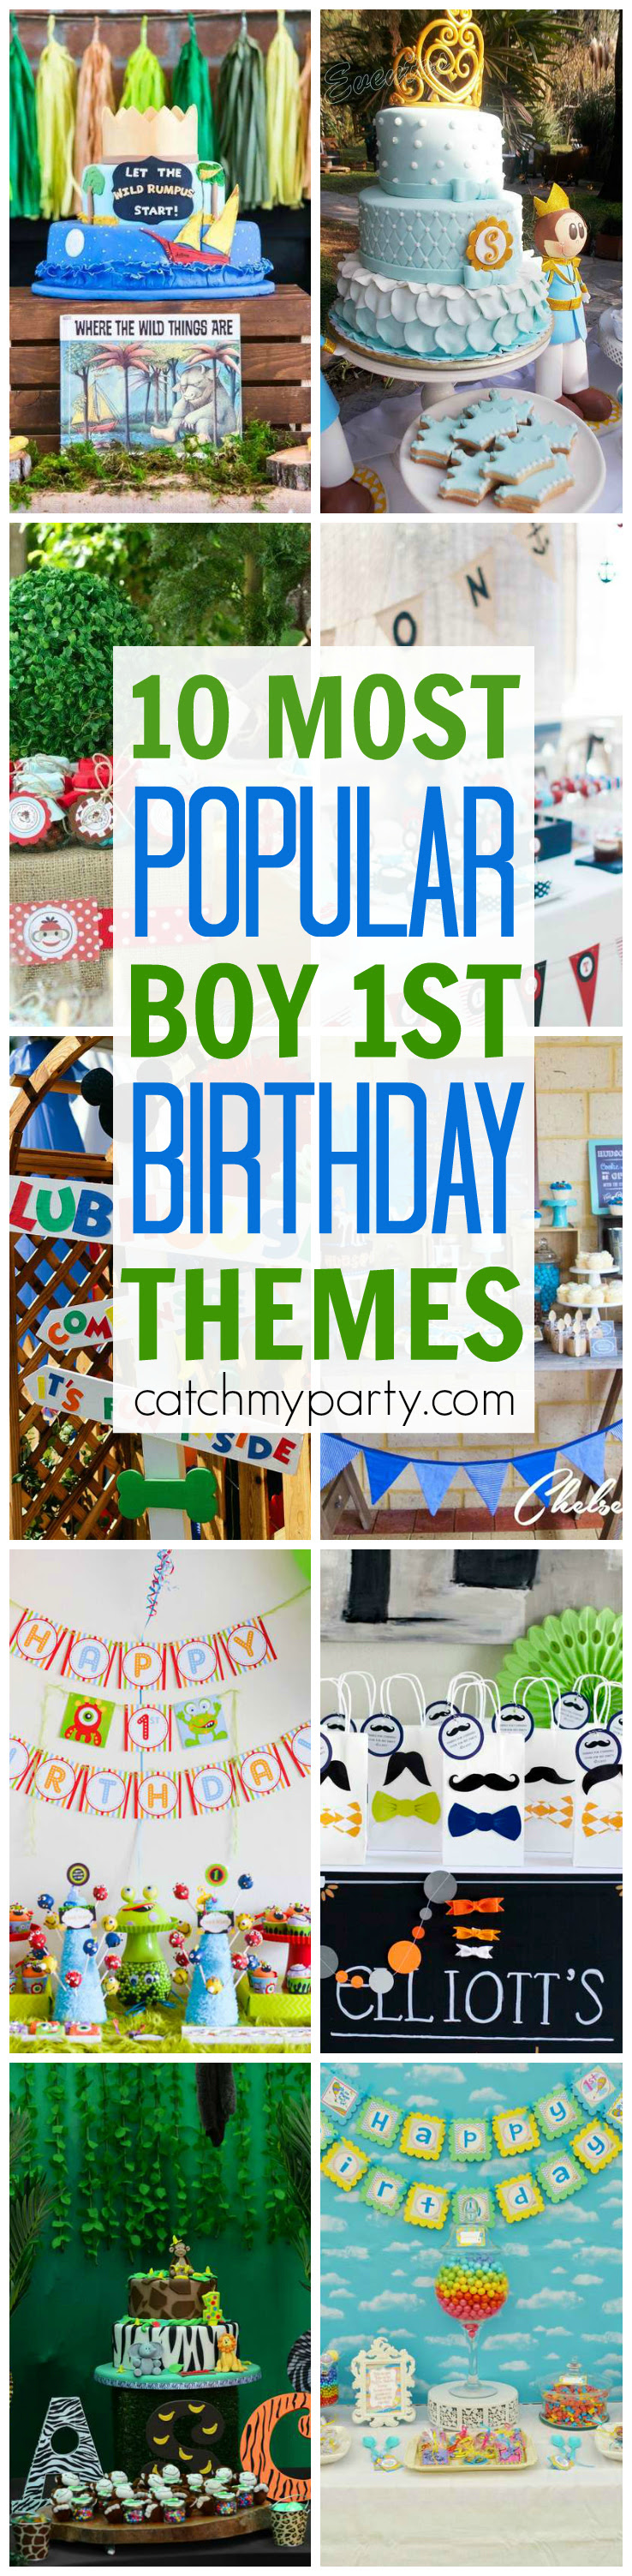 10 Most Popular Boy 1st Birthday Party Themes Catch My Party